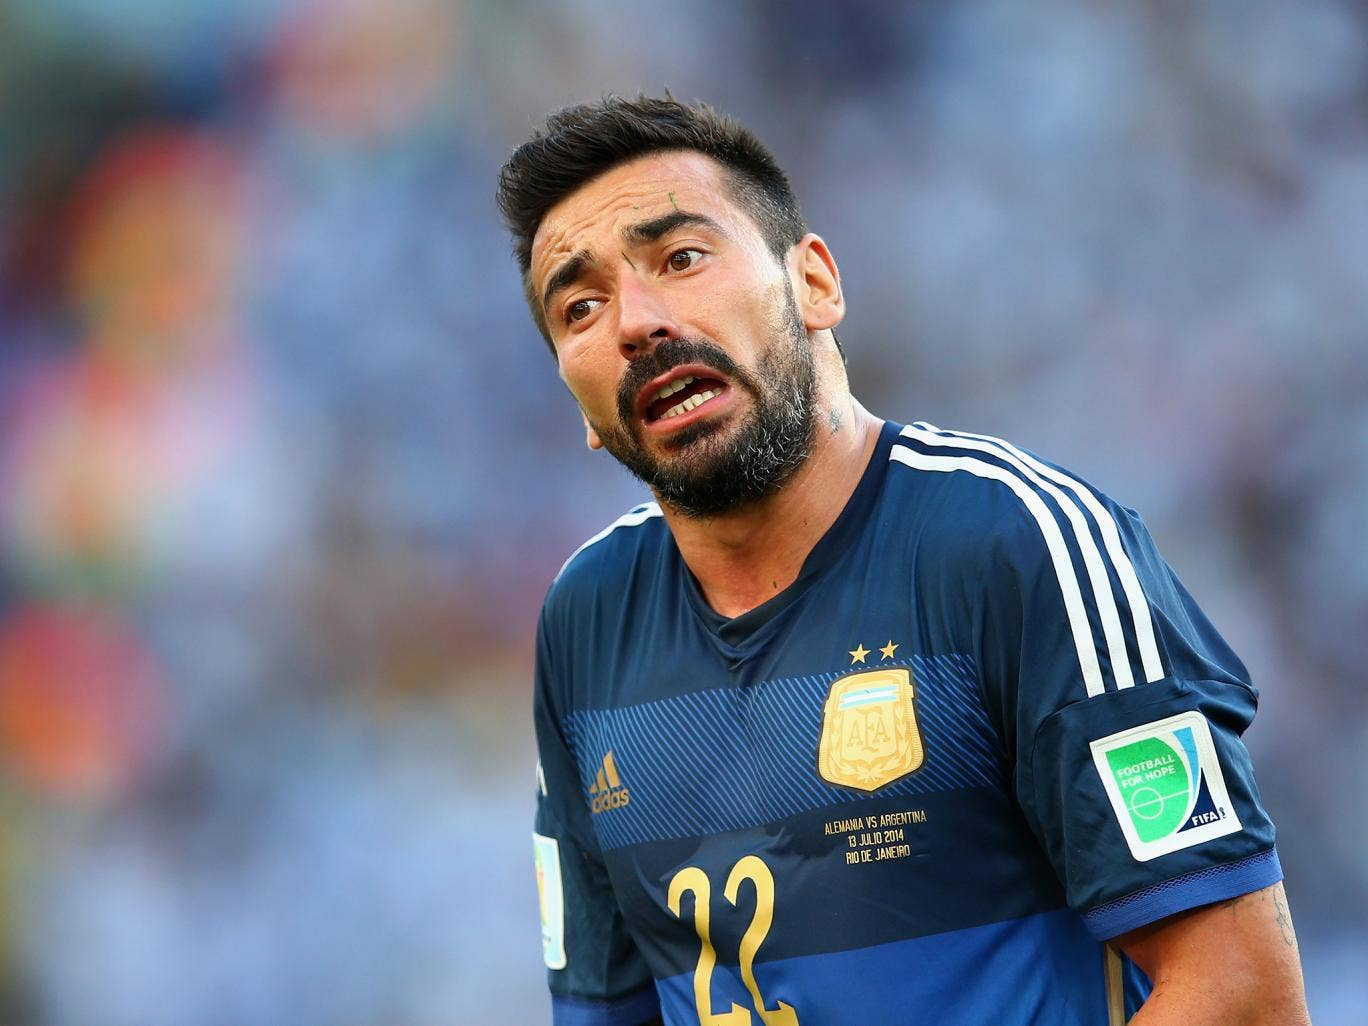 Ezequiel Lavezzi pictured during the 2014 World Cup final